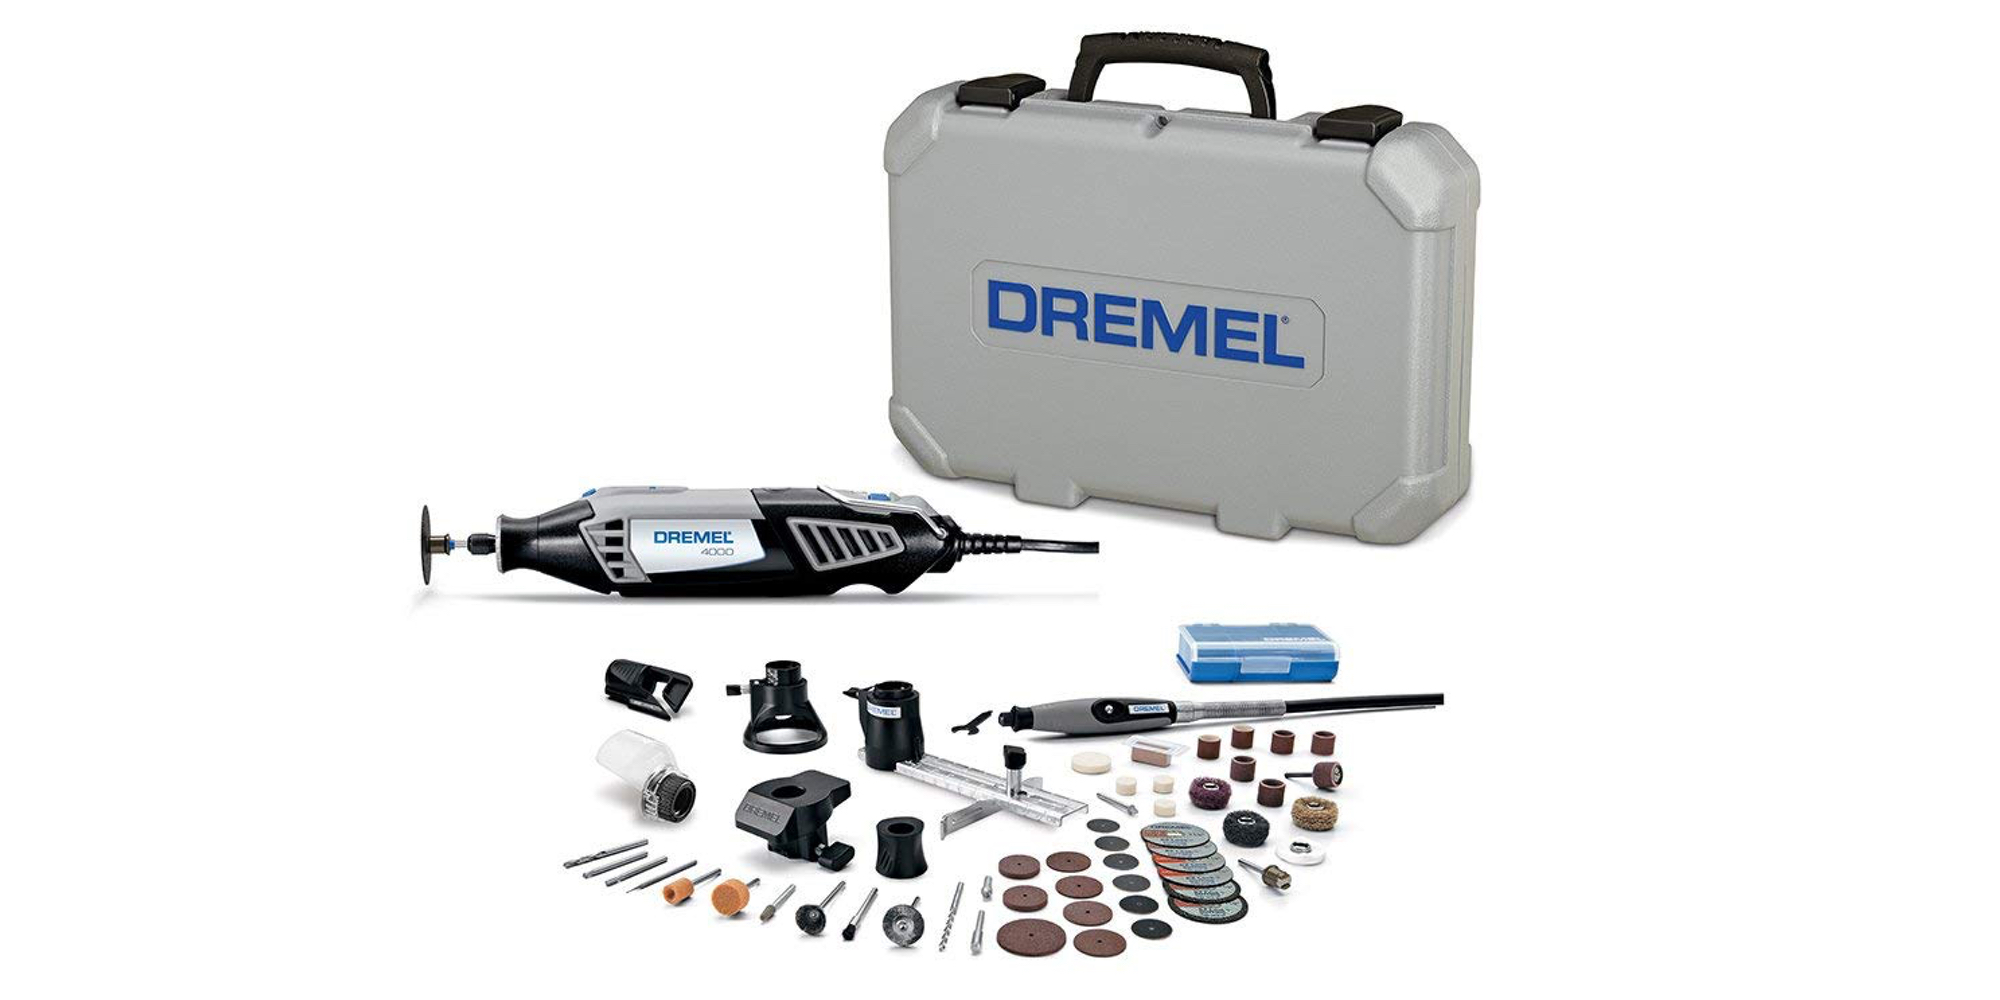 Score This Dremel And 50 Accessories At A New Amazon Low Of 79 Shipped Reg 135 More 9to5toys